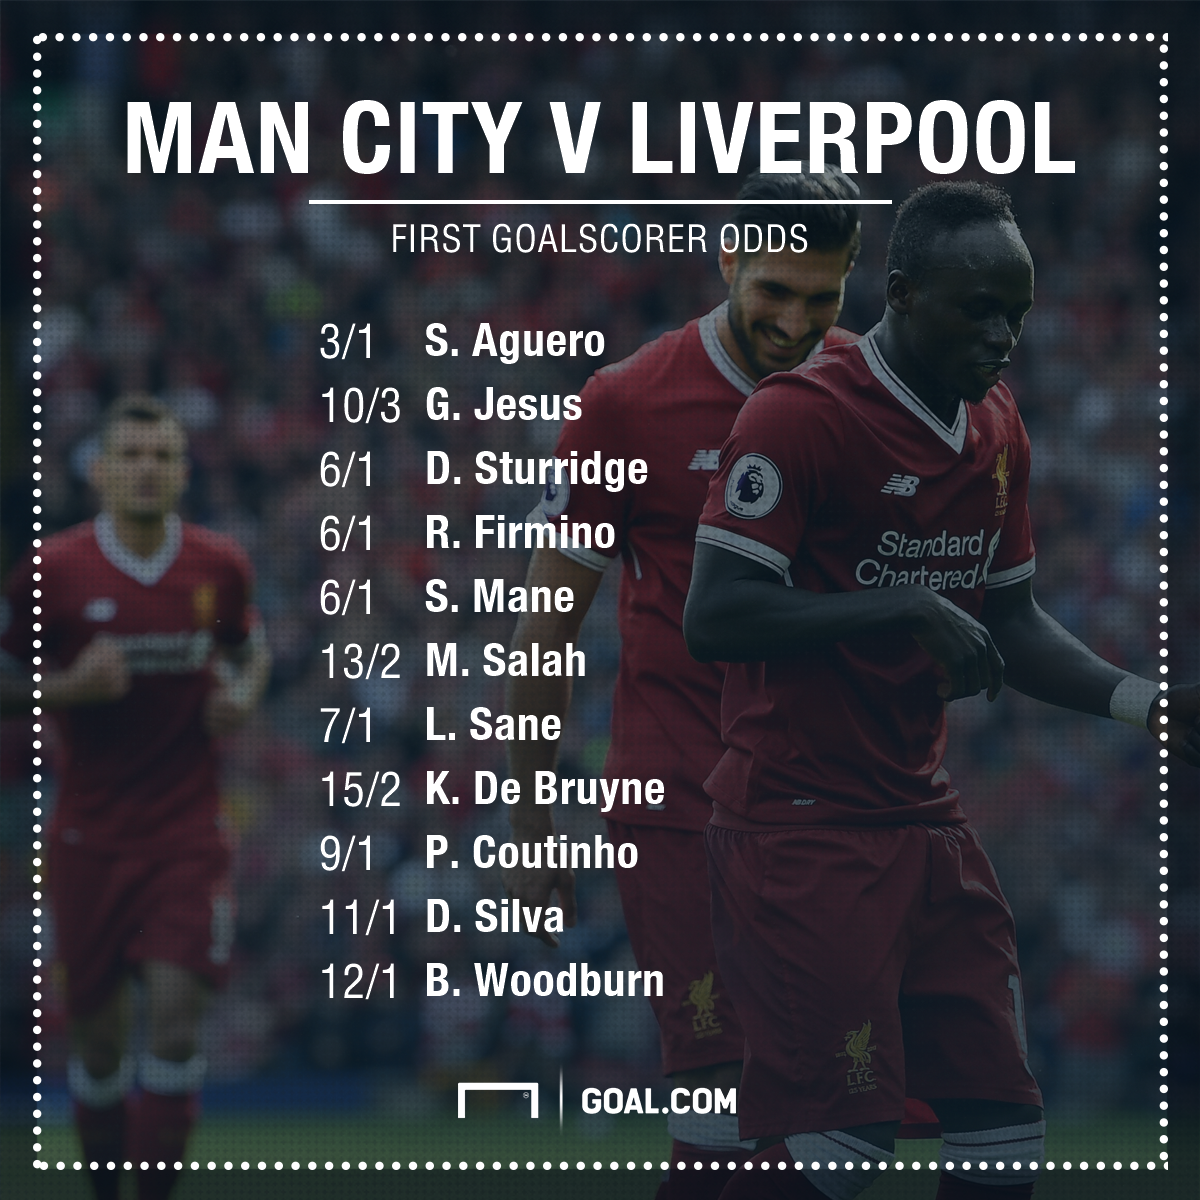 Man City v Liverpool betting